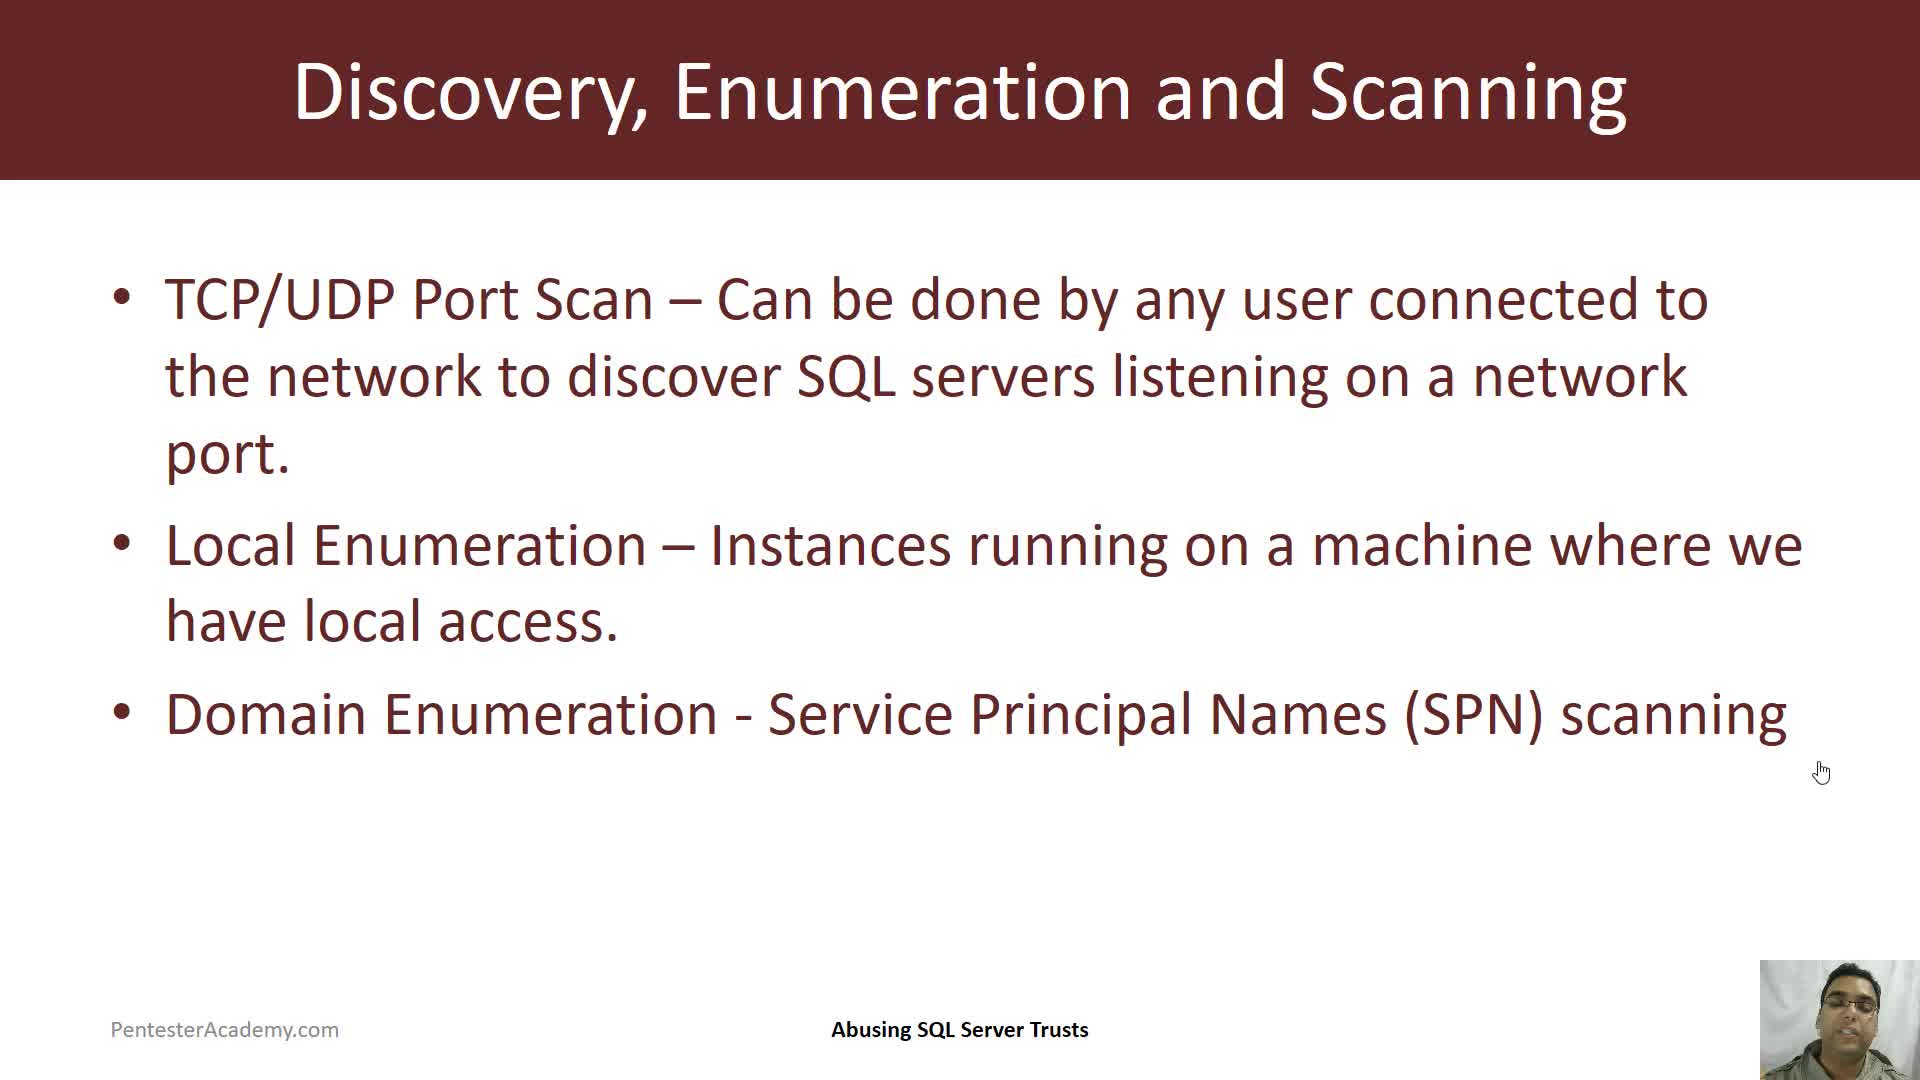 Discovering SQL Server within the Domain